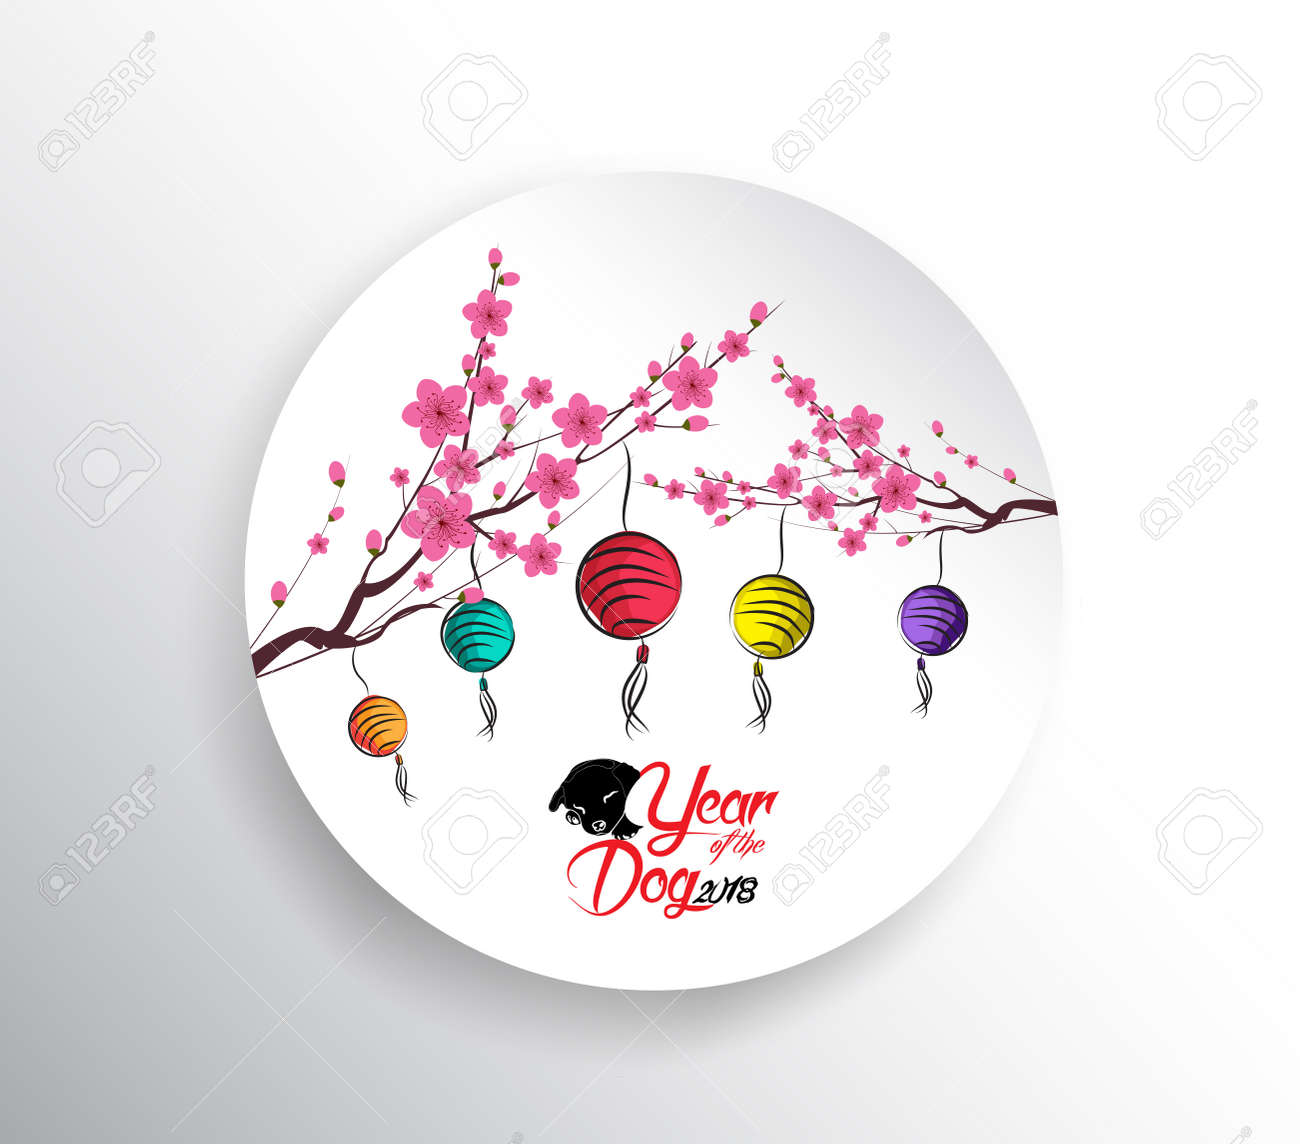 Happy chinese new year 2018 seasons greetings lantern design seasons greetings lantern design year of the dog kristyandbryce Image collections